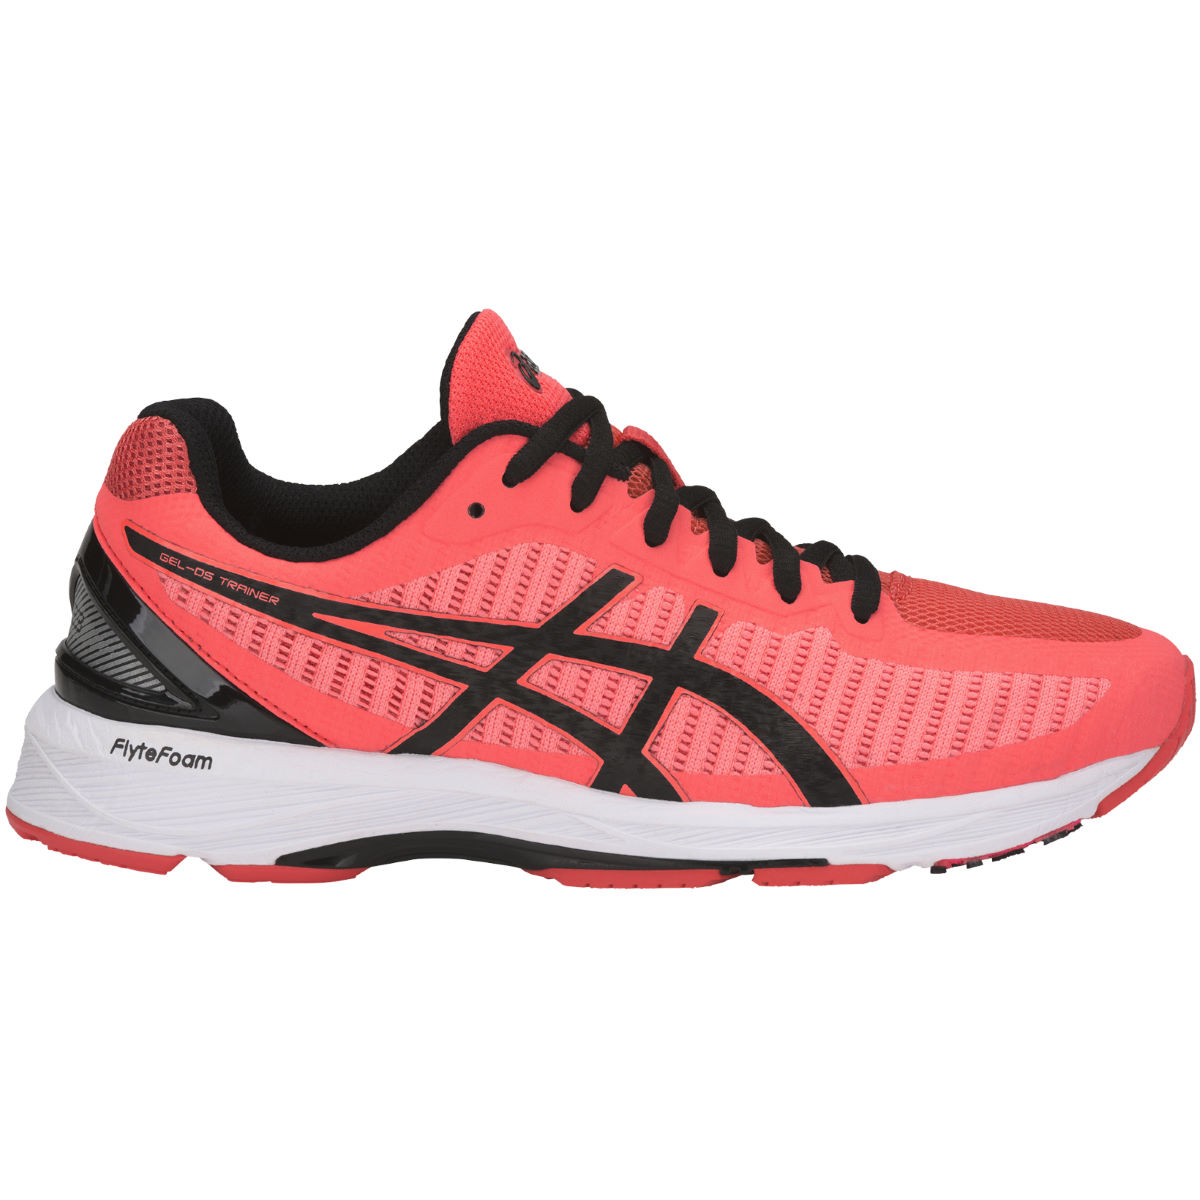 Chaussures Femme Asics Gel-DS Trainer 23 - UK 5 FLASH CORAL/BLACK/CO